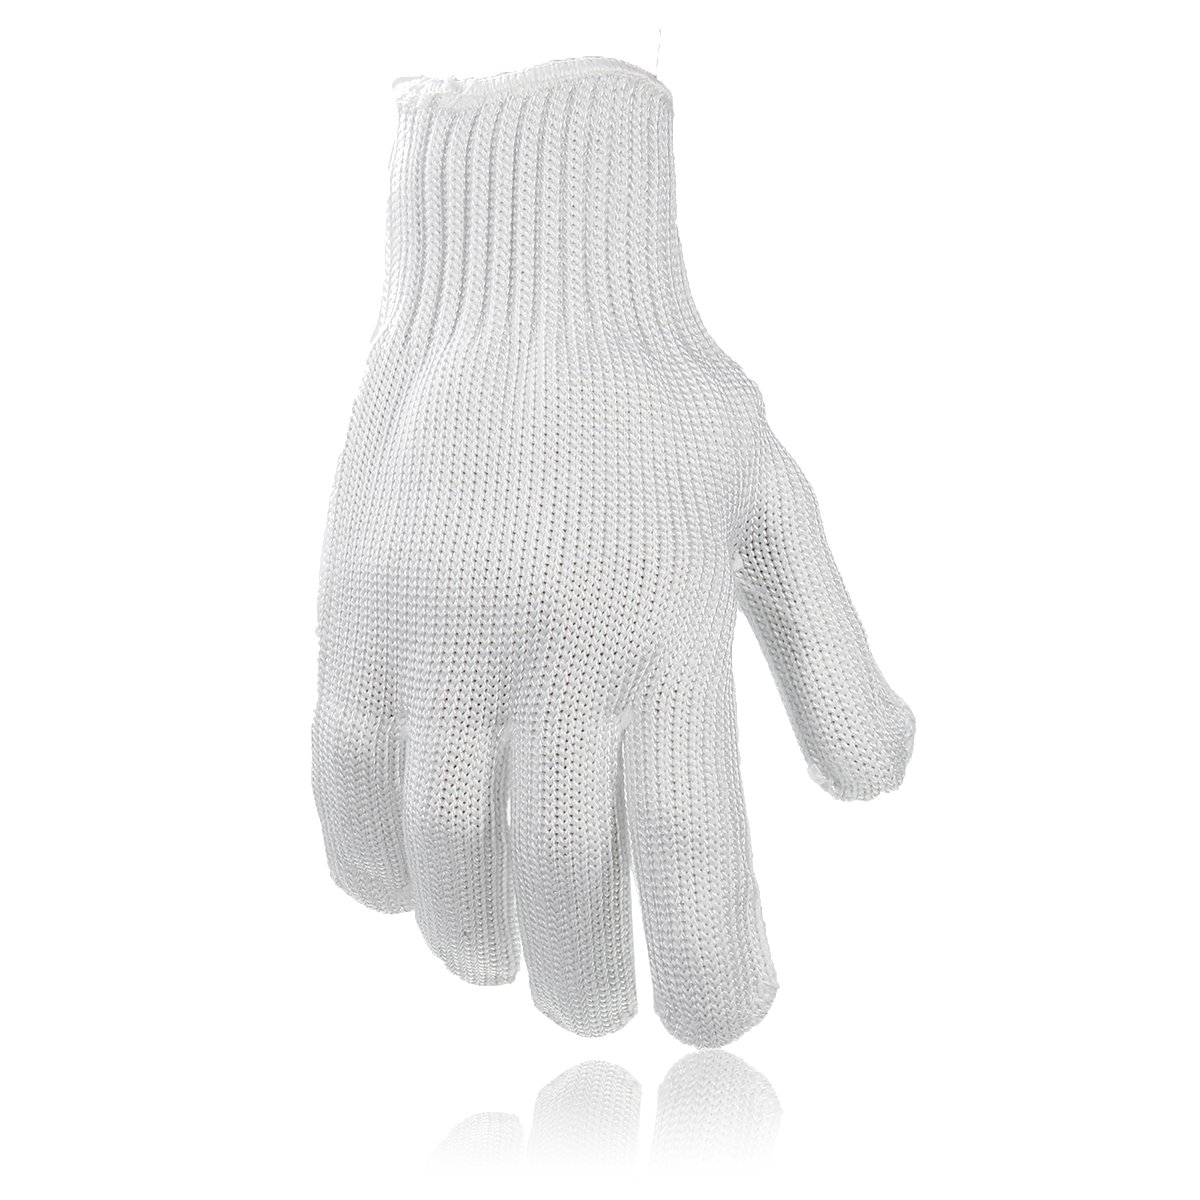 NEW Cut Resistant Anti cutting Gloves Wearable Anti glass Scratches ...